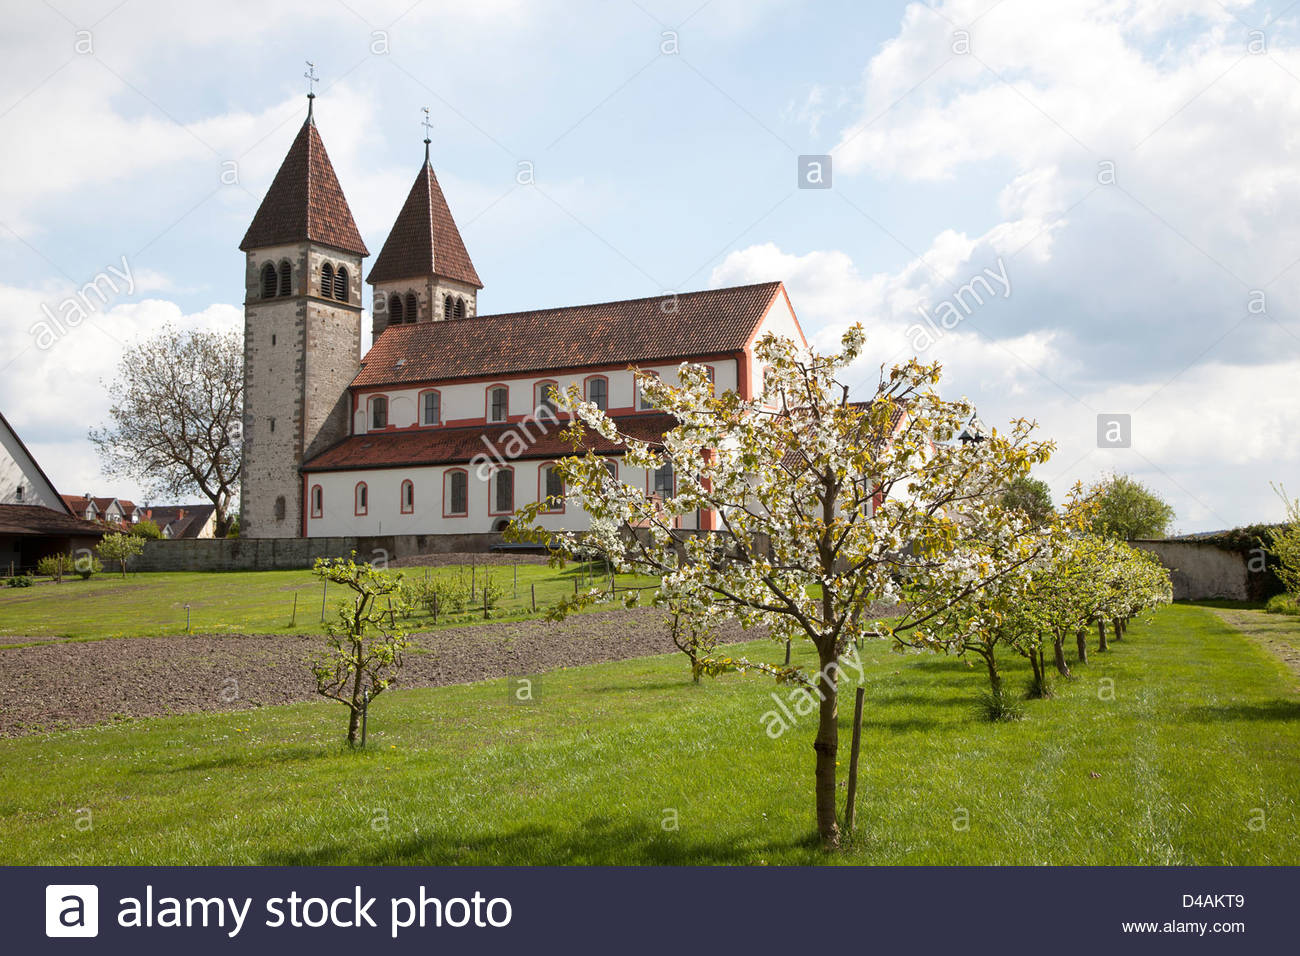 Stiftskirche St. Peter und Paul The Bodensee, Reichenau, Germany, Collegiate Church of St. Peter and Paul Stock ...